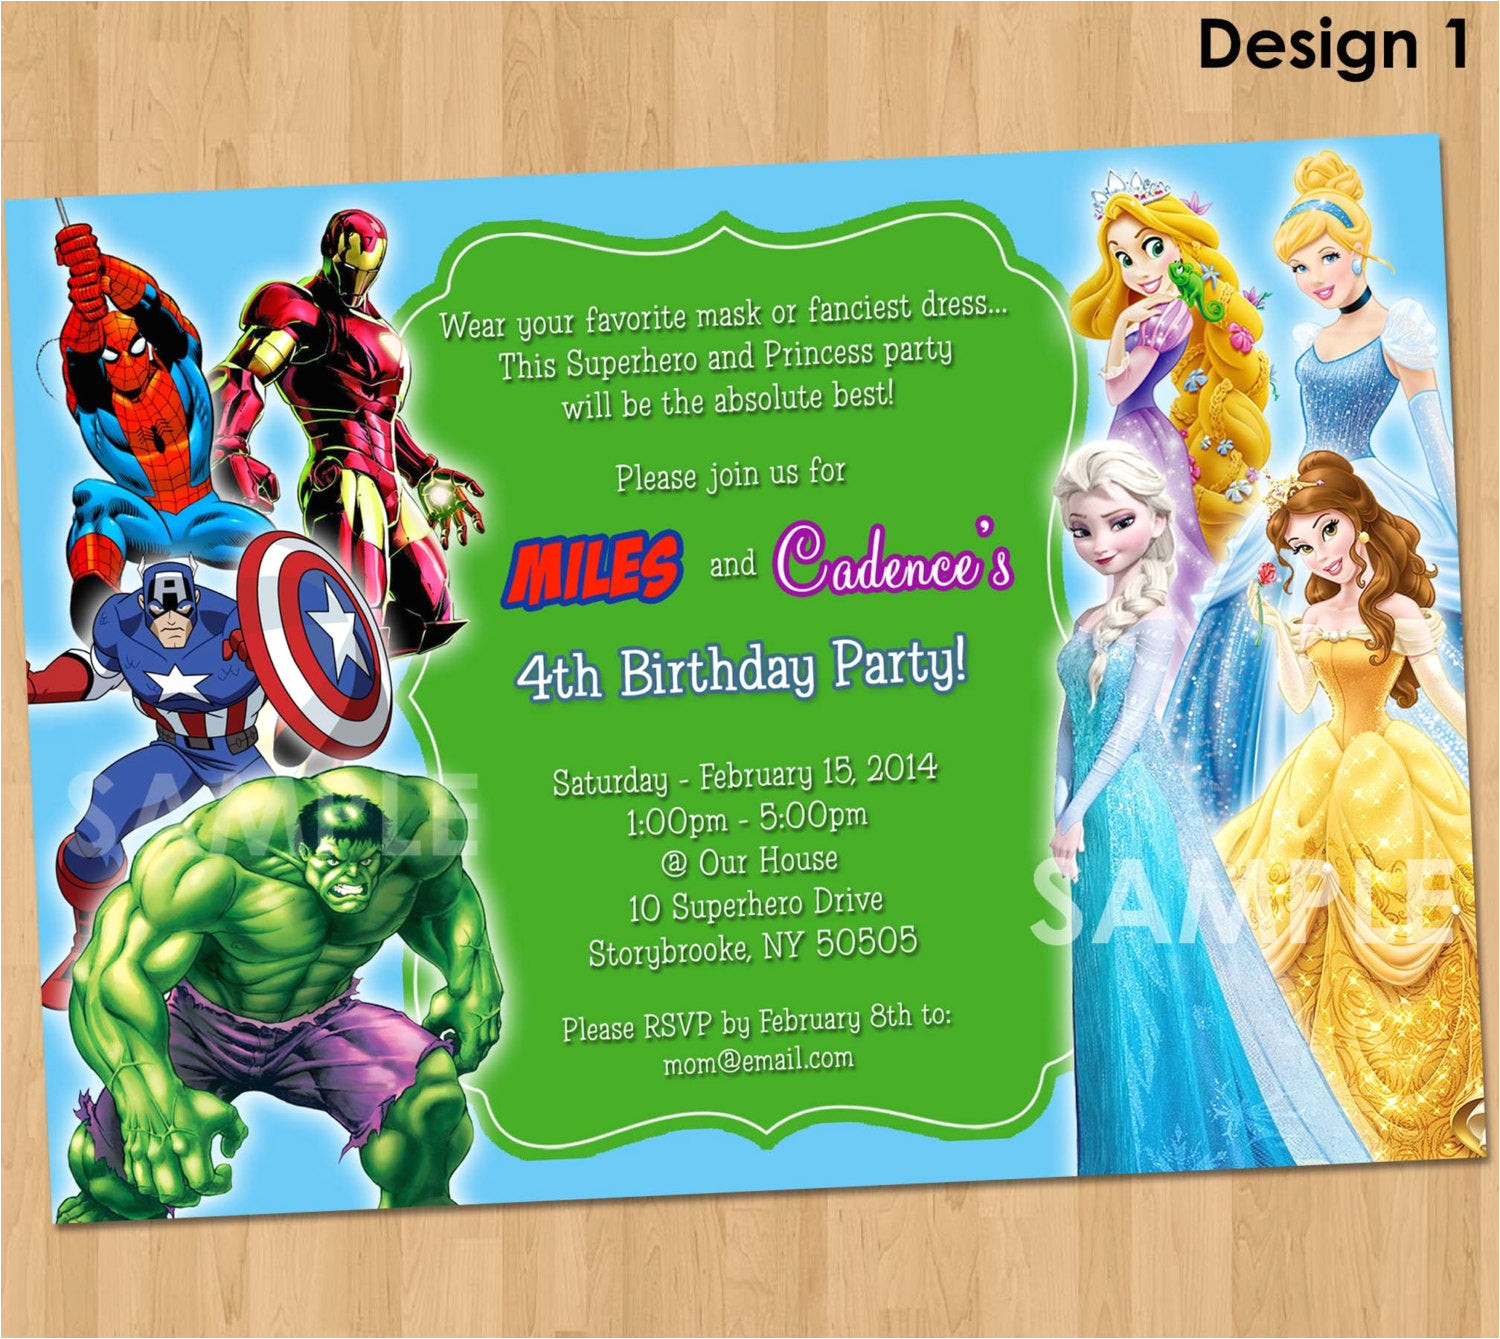 double party invitation superheroes and